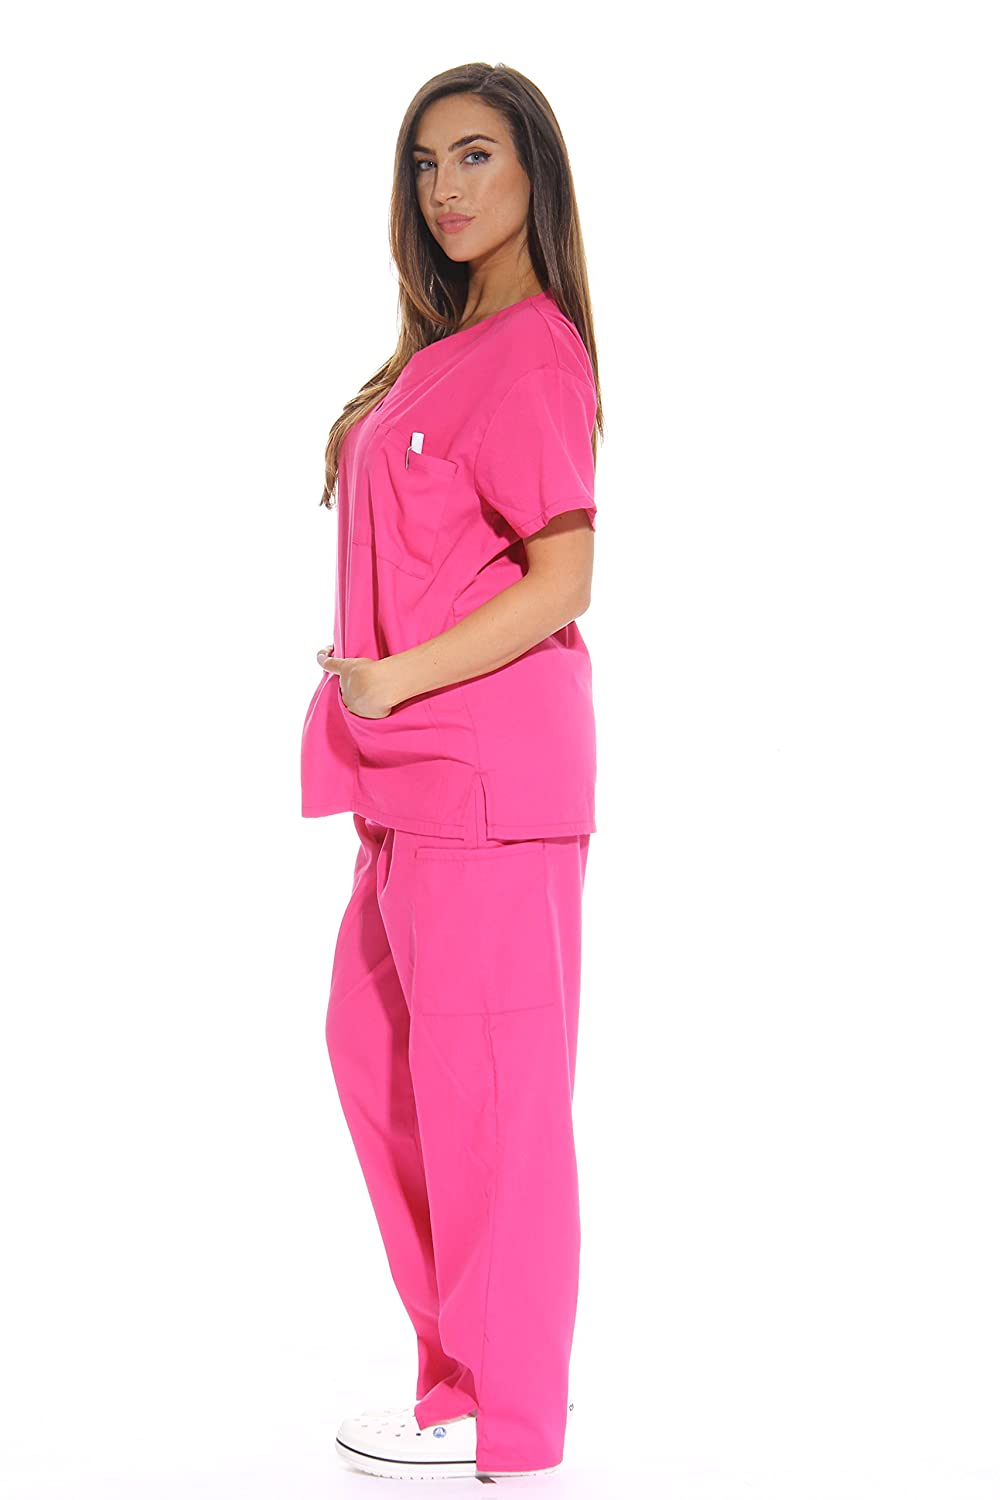 52ebb85a58f ... Just Love Womens Scrub Sets Six Pocket Medical Scrubs (V-Neck Cargo  Pant) ...